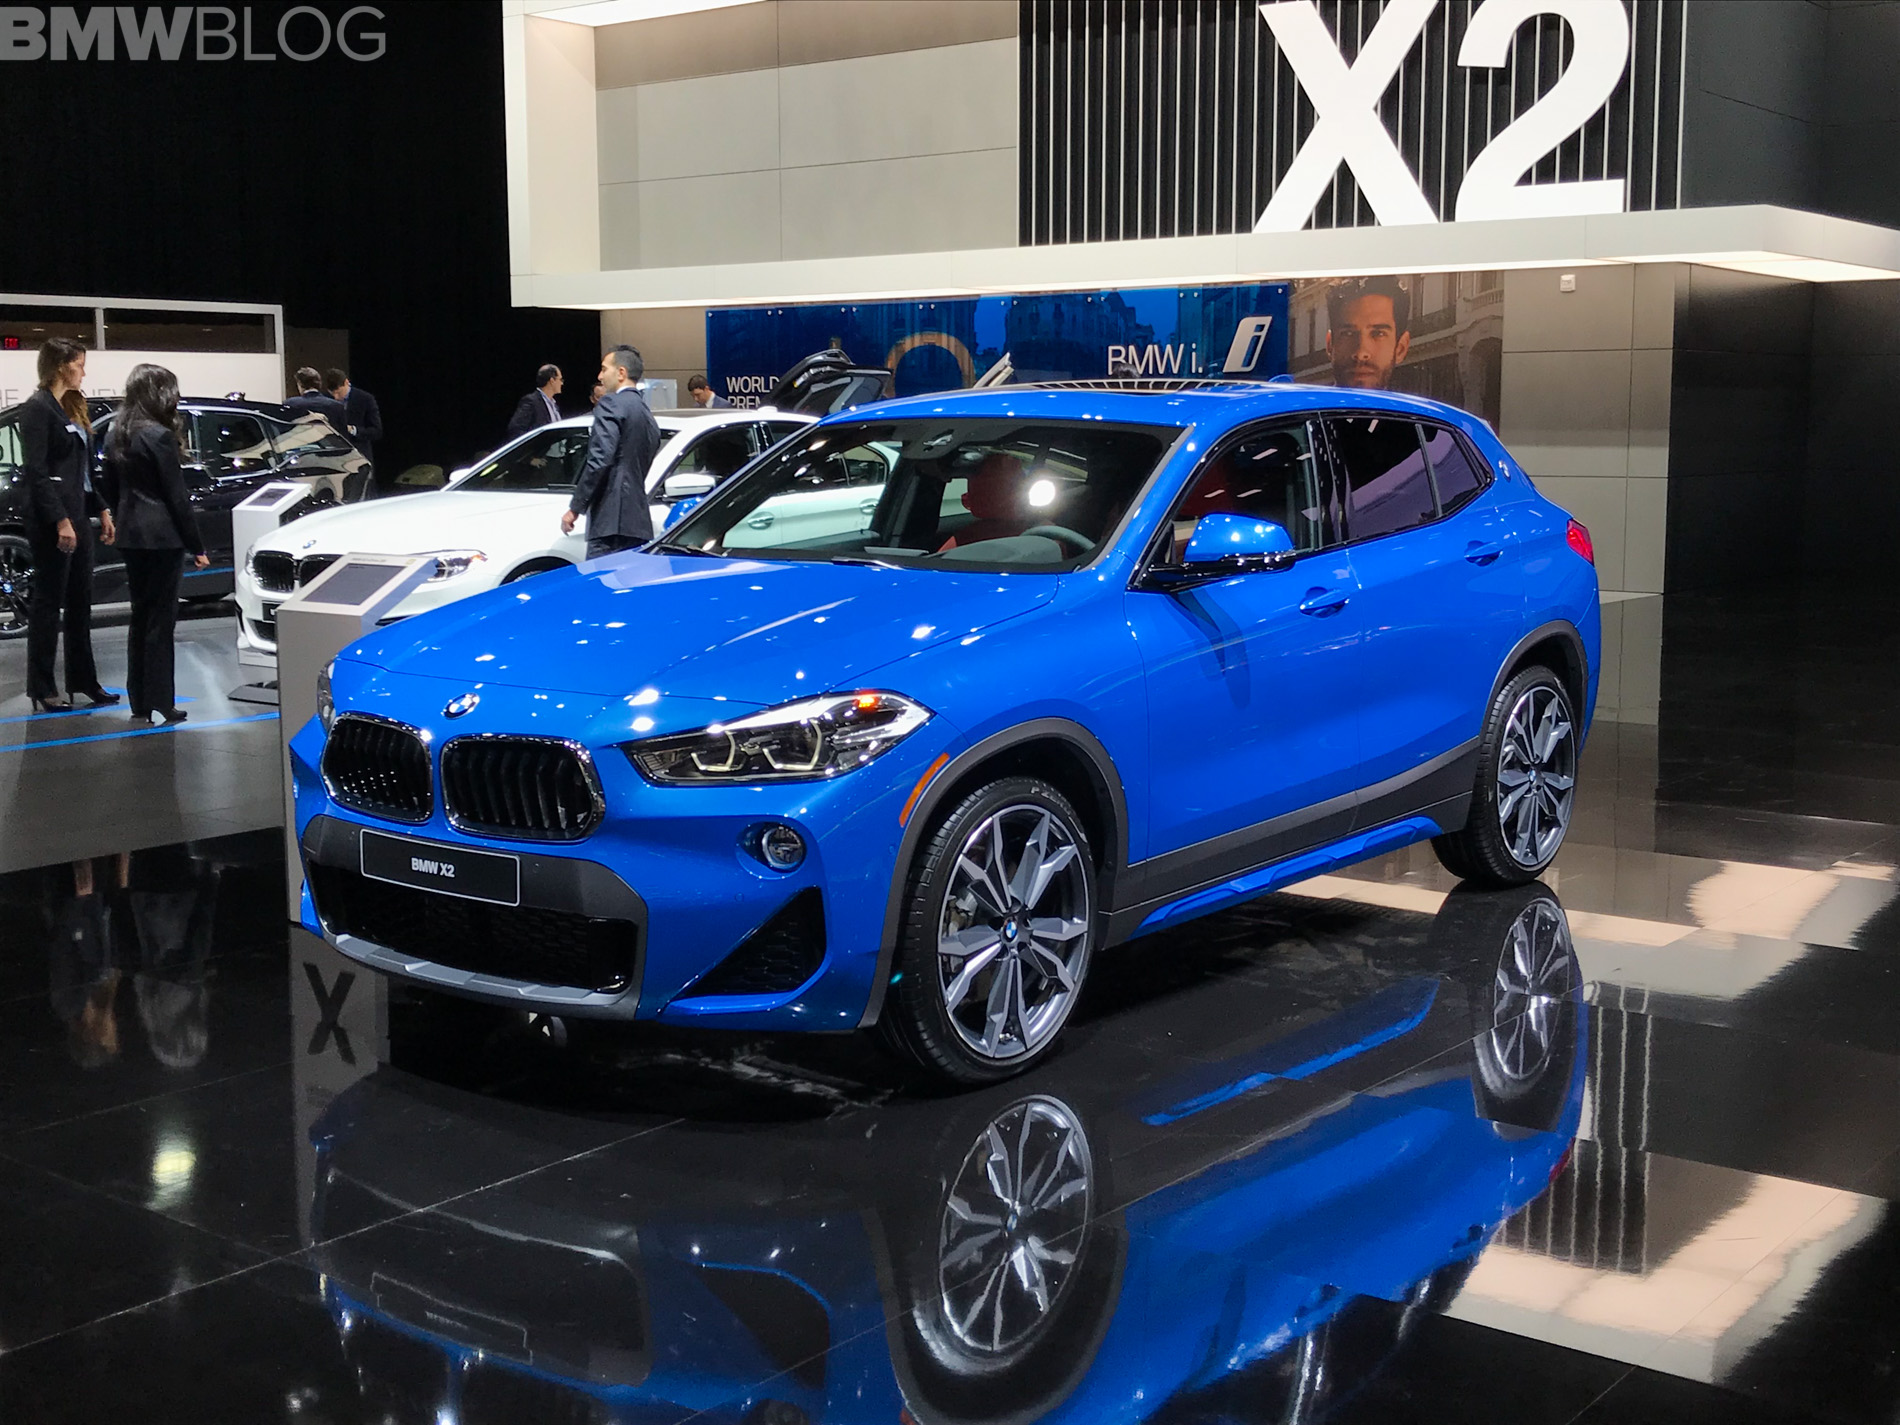 Bmw X2 Product Manager Talks About Bmw S Newest Sav In Detroit